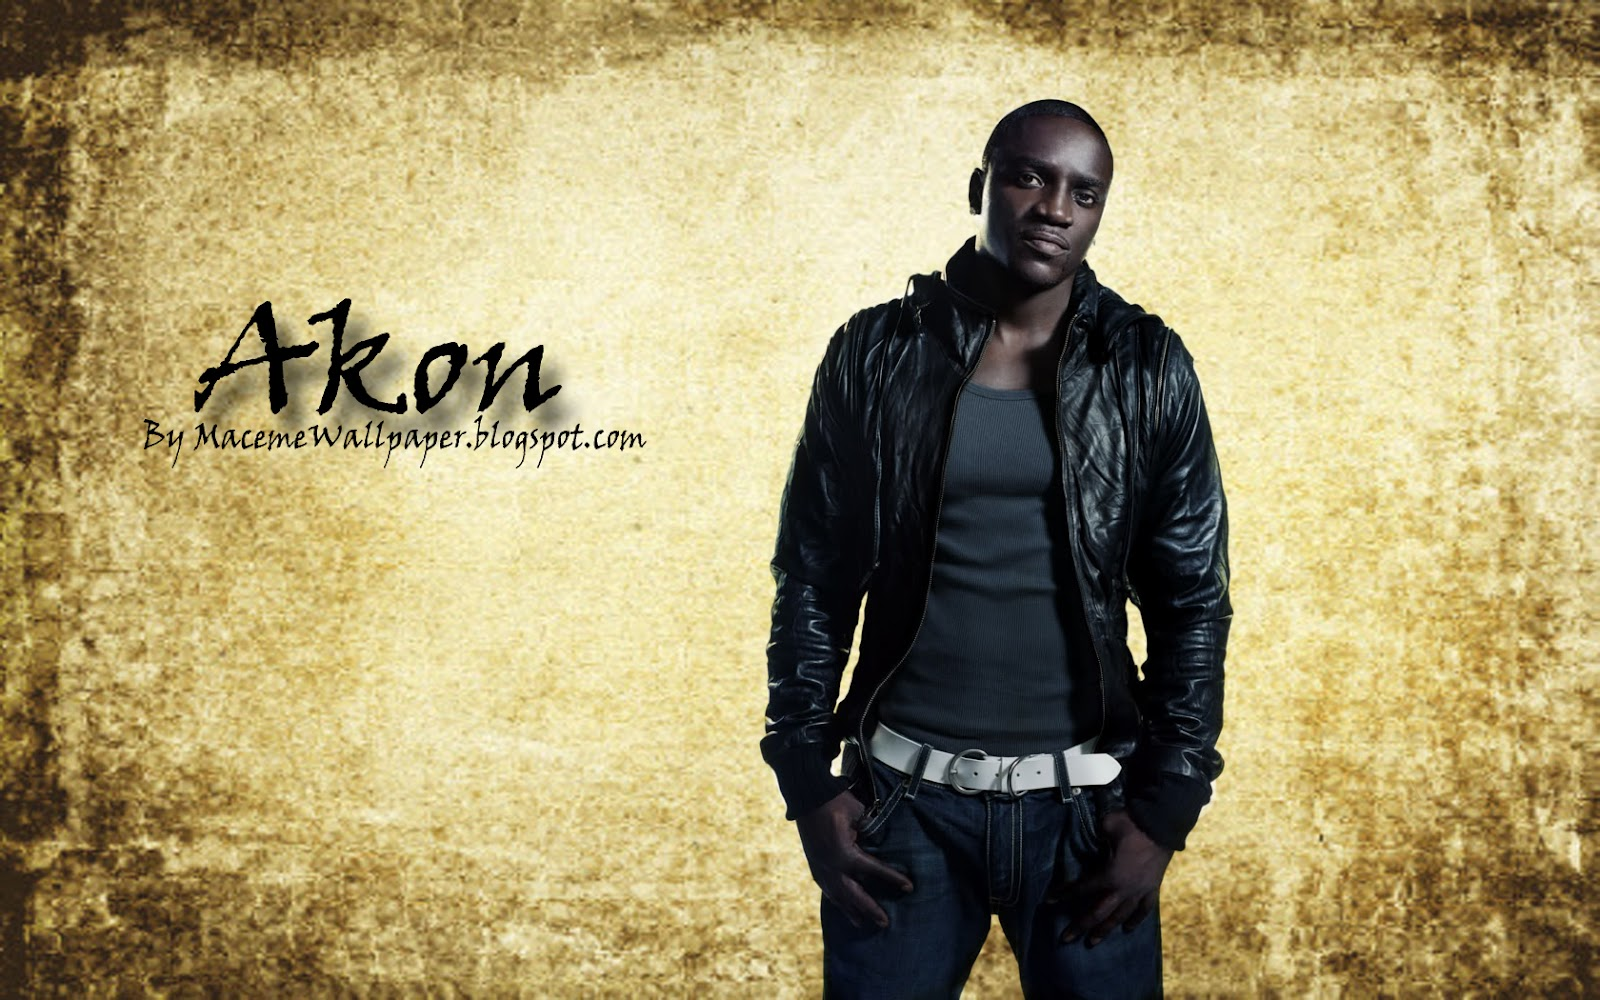 Cool Galaxy Wallpapers With Quotes Akon Wallpaper Maceme Wallpaper